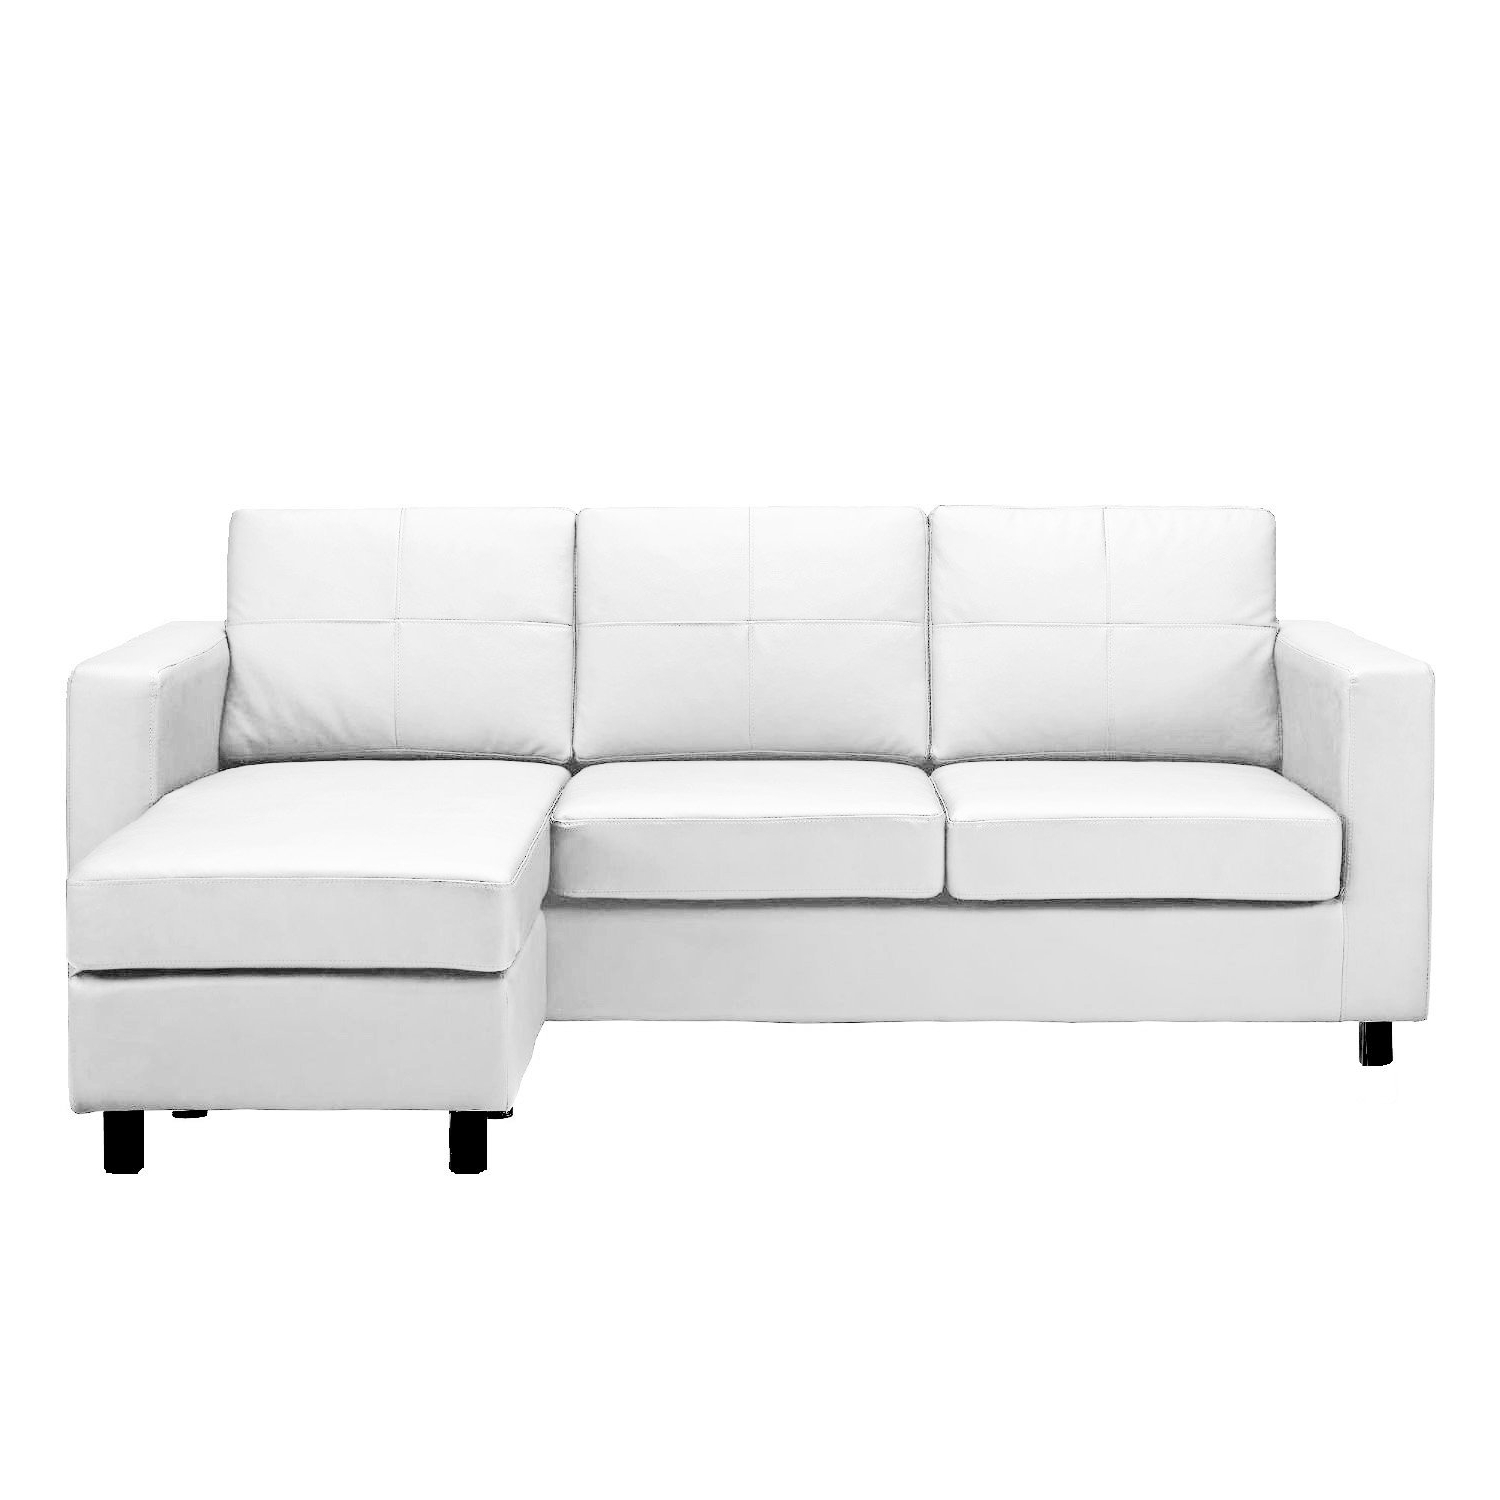 2019 Sofa : Chaise Sofa Double Chaise Sectional Leather Apartment Size For Apartment Sofas (View 5 of 20)